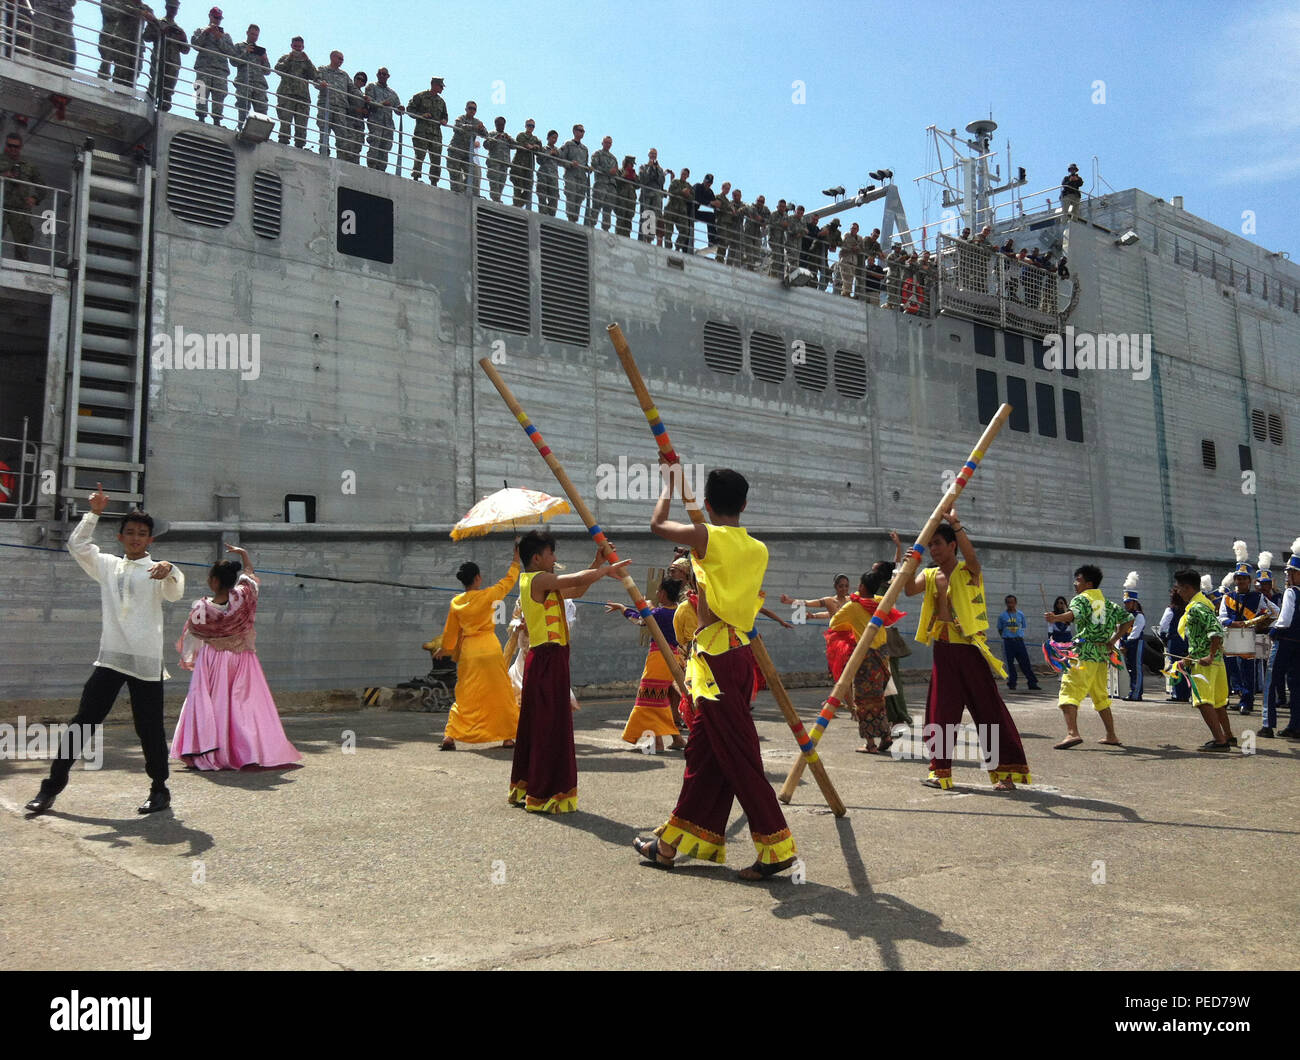 150804-N-ZZ999-026 SAN FERNANDO CITY, Philippines (Aug. 4, 2015) – Traditional Filipino dancers perform as the Military Sealift Command joint high speed vessel USNS Millinocket (JHSV 3) arrives in San Fernando City Aug. 4. Millinocket is in the Philippines for the fourth stop of Pacific Partnership 2015. Millinocket and embarked Task Force Forager are serving as the secondary platform for Pacific Partnership, led by an expeditionary command element from the Navy's 30th Naval Construction Regiment (30 NCR) from Port Hueneme, Calif. Now in its 10th iteration, Pacific Partnership is the largest a - Stock Image